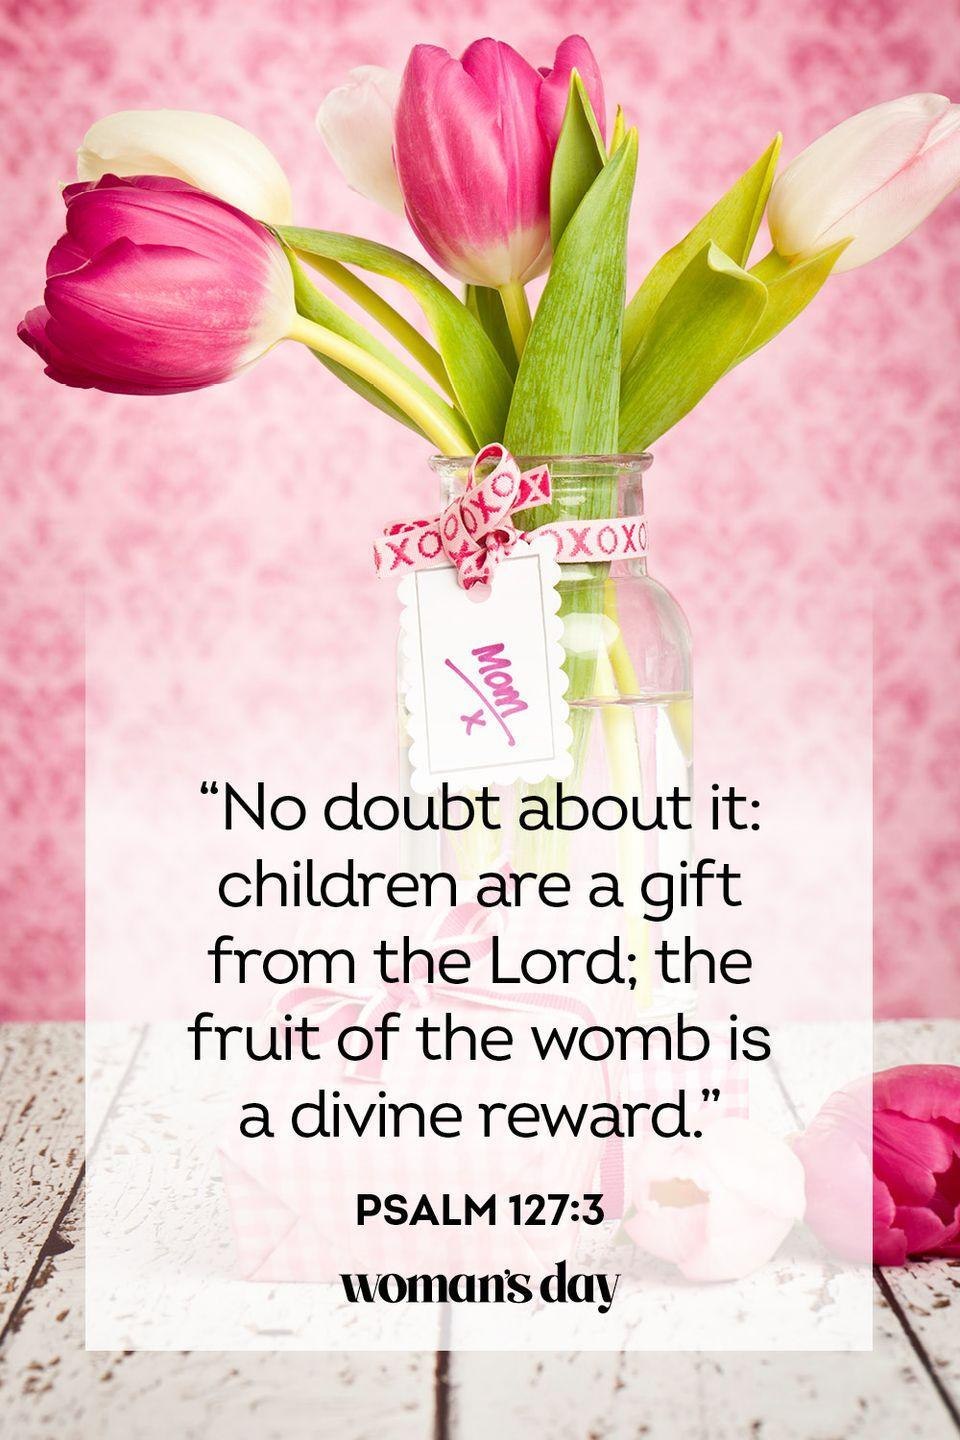 "<p>""No doubt about it: children are a gift from the Lord; the fruit of the womb is a divine reward.""</p><p><strong>The Good News: </strong>God created the family, and He offers the blessing of children as a gift. </p>"